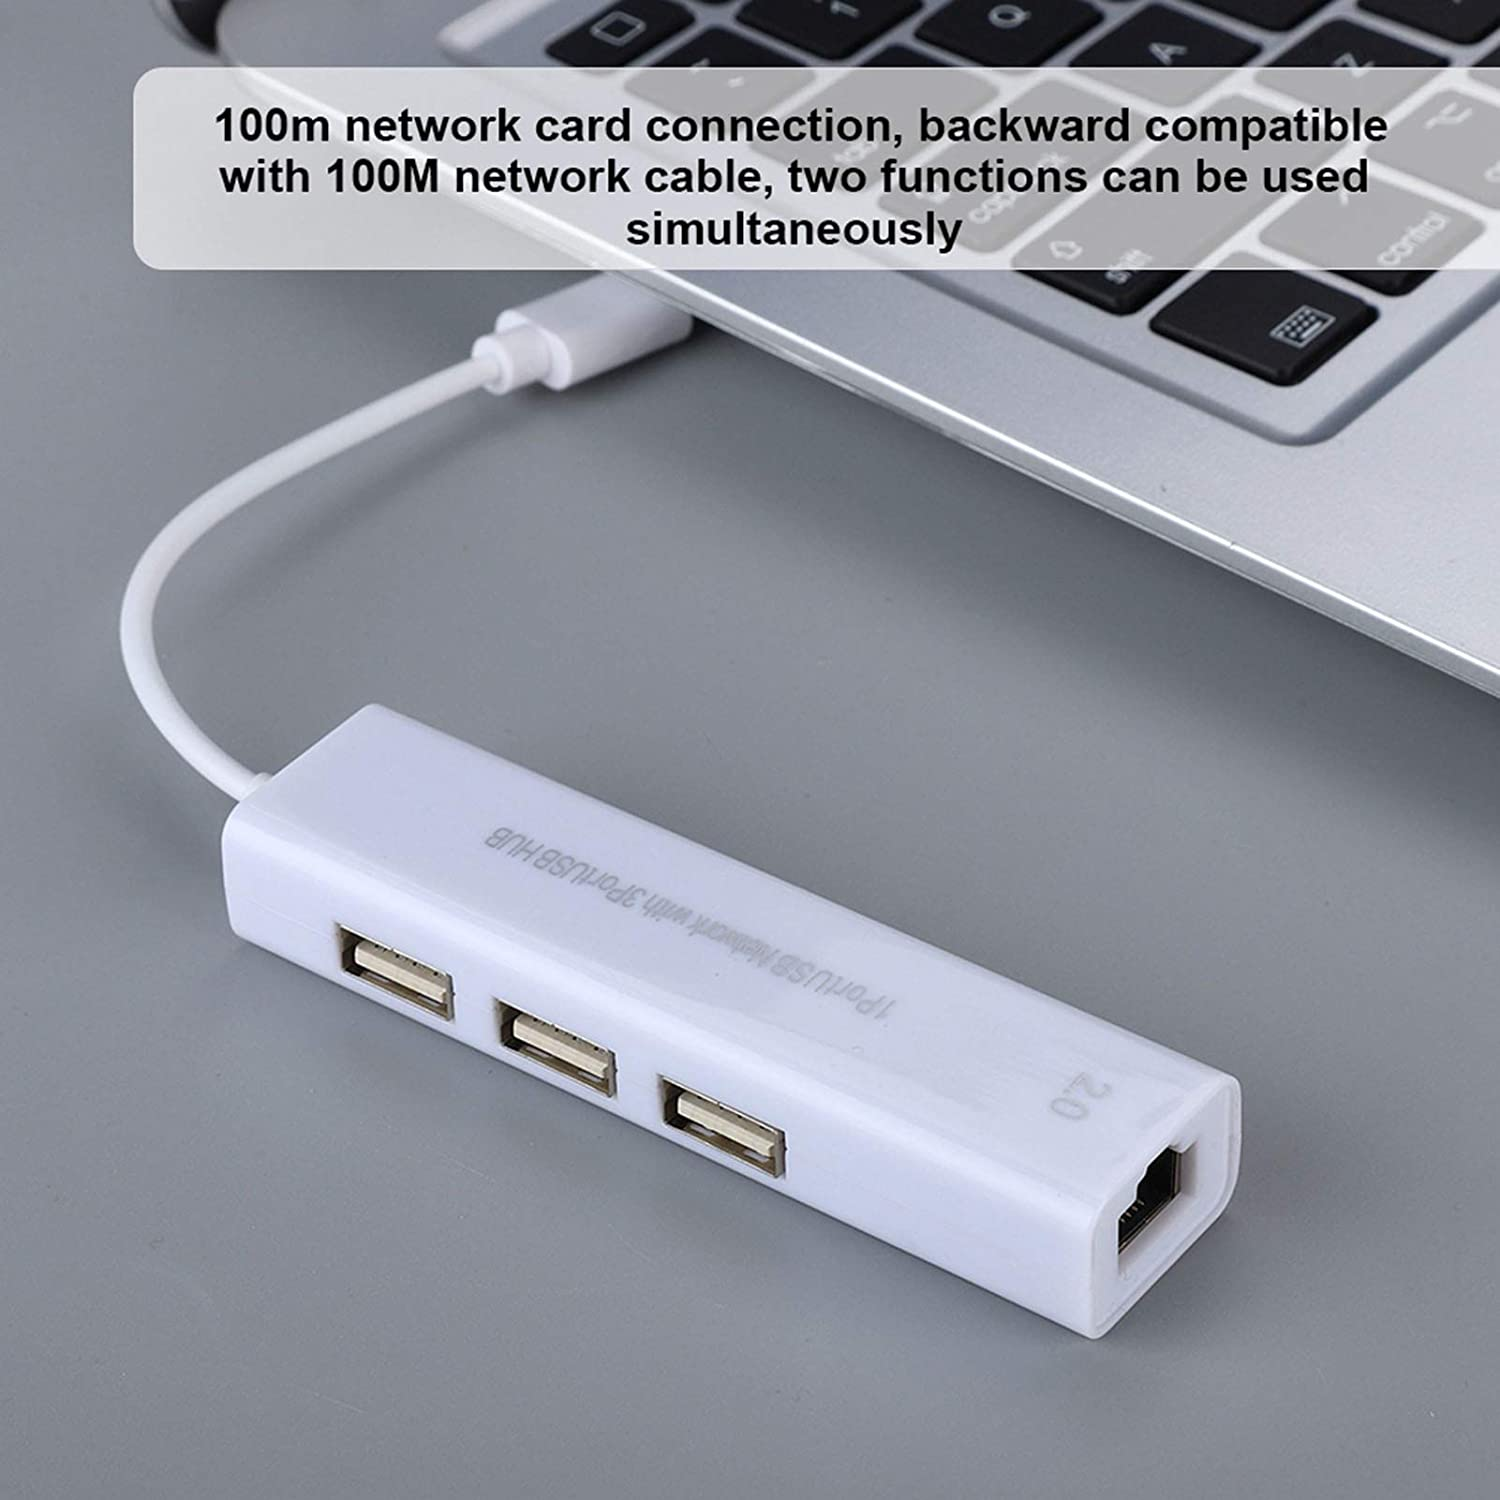 Demeras 100M 10Gbps USB Hub Mini 22cm USB 2.0 Transfer Cable for Computer for Laptop